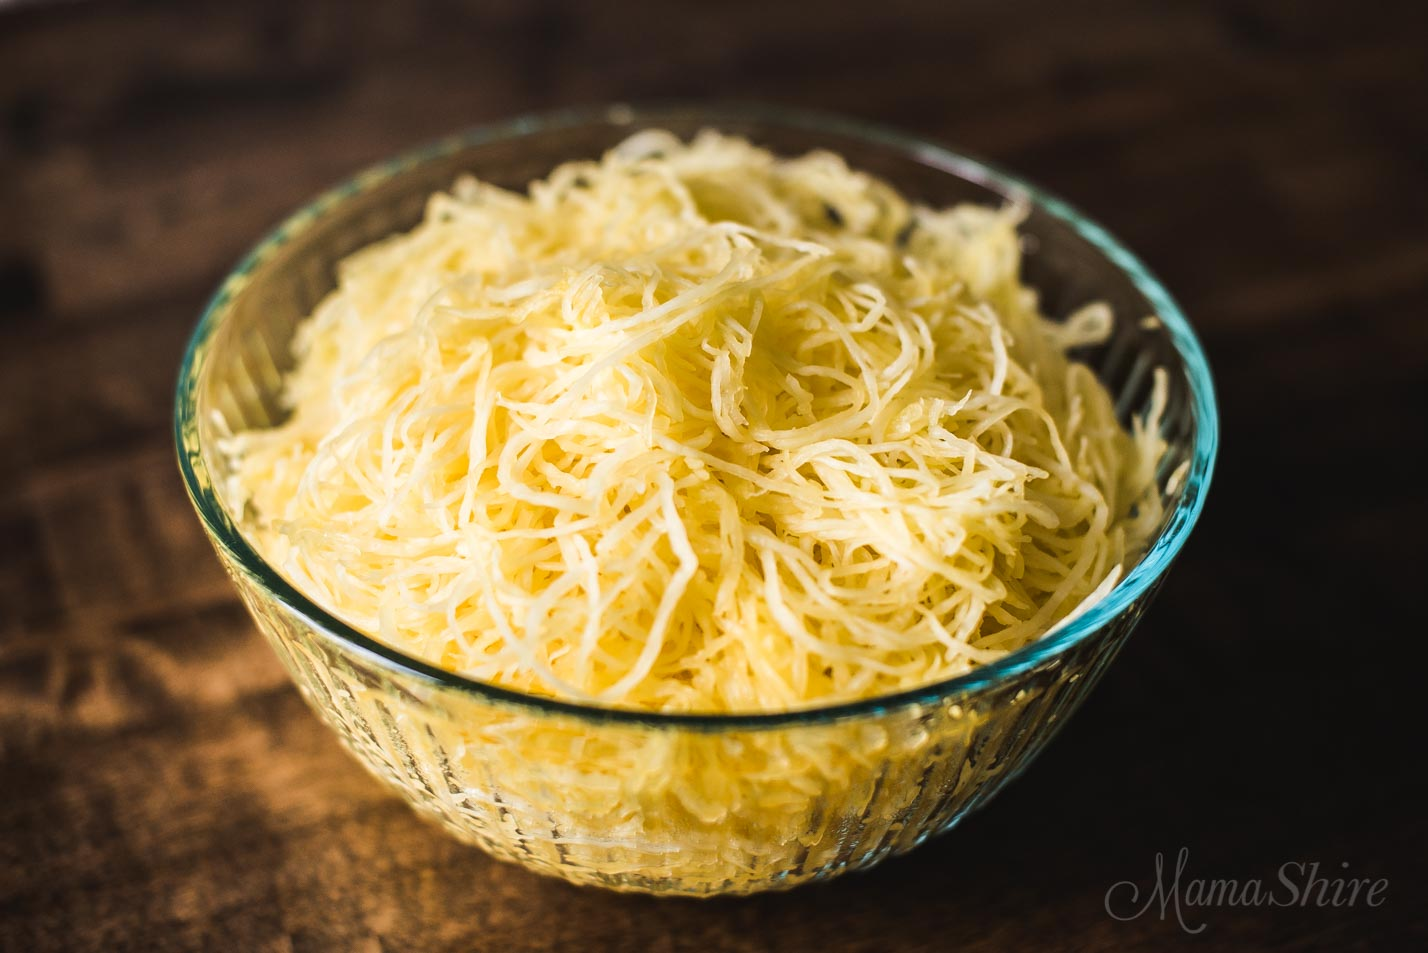 How to Cut and Cook a Spaghetti Squash